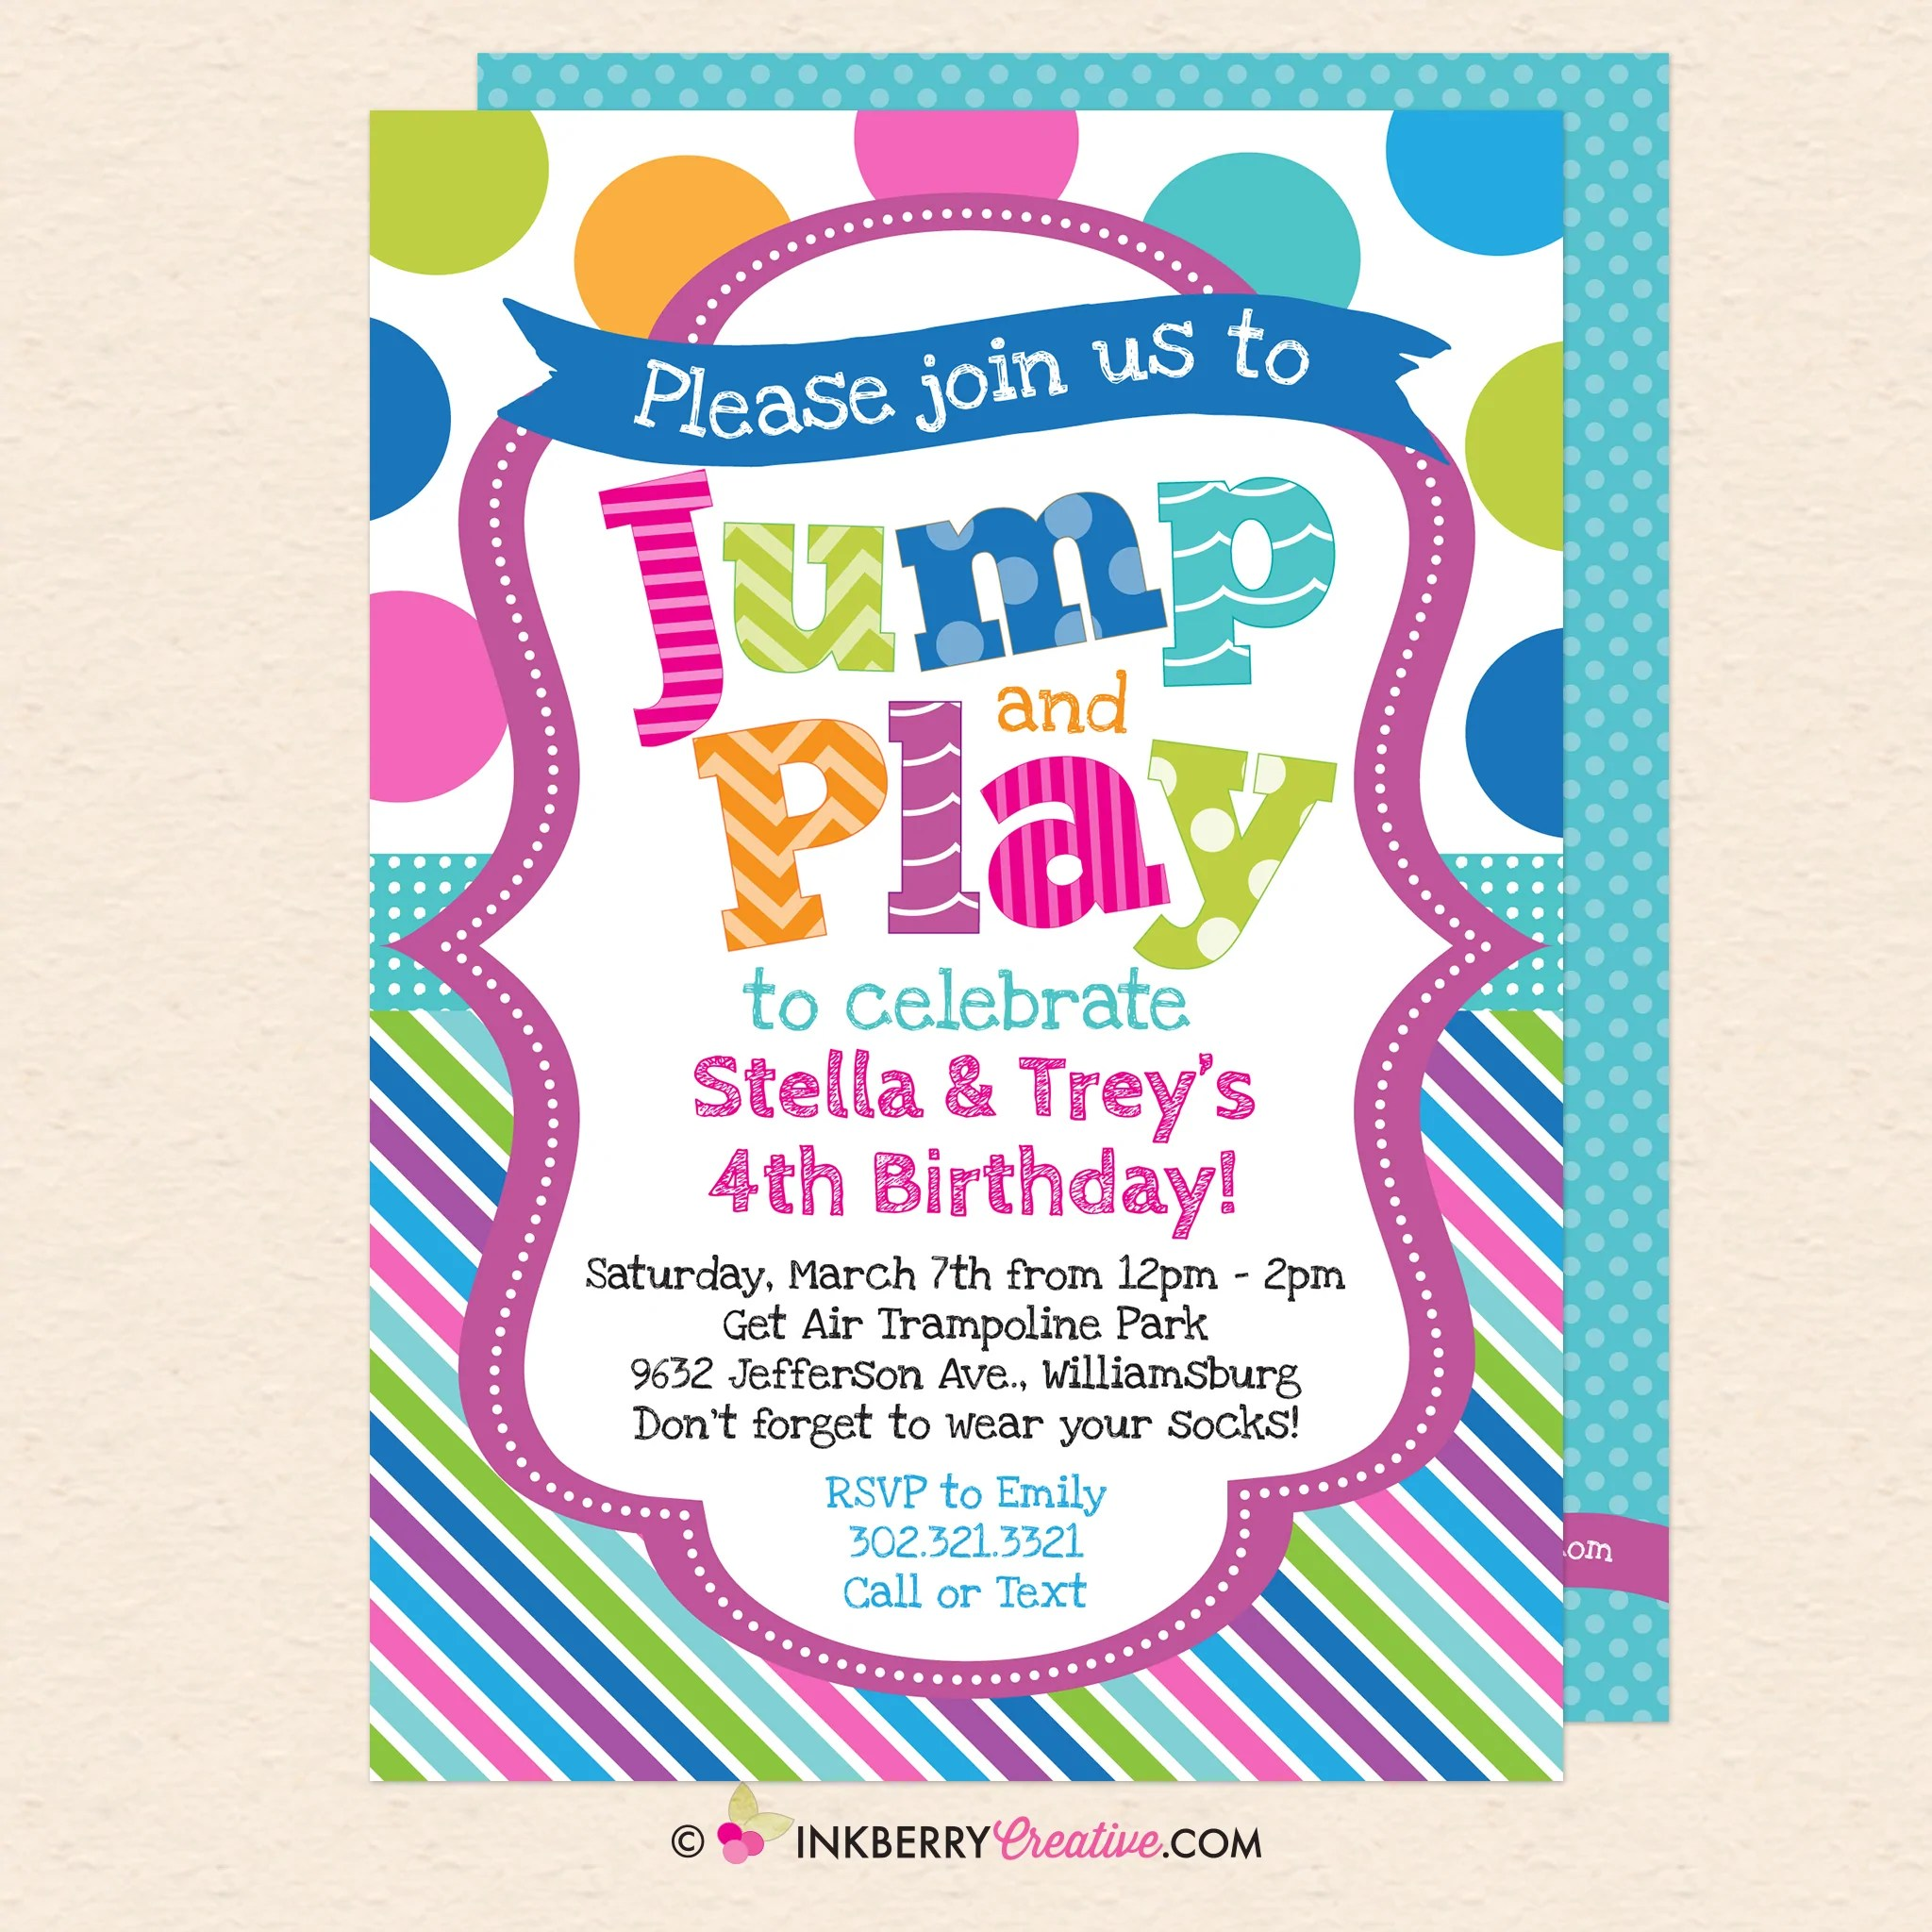 jump and play kids bounce or trampoline birthday party invitation blue printable instant download editable pdf